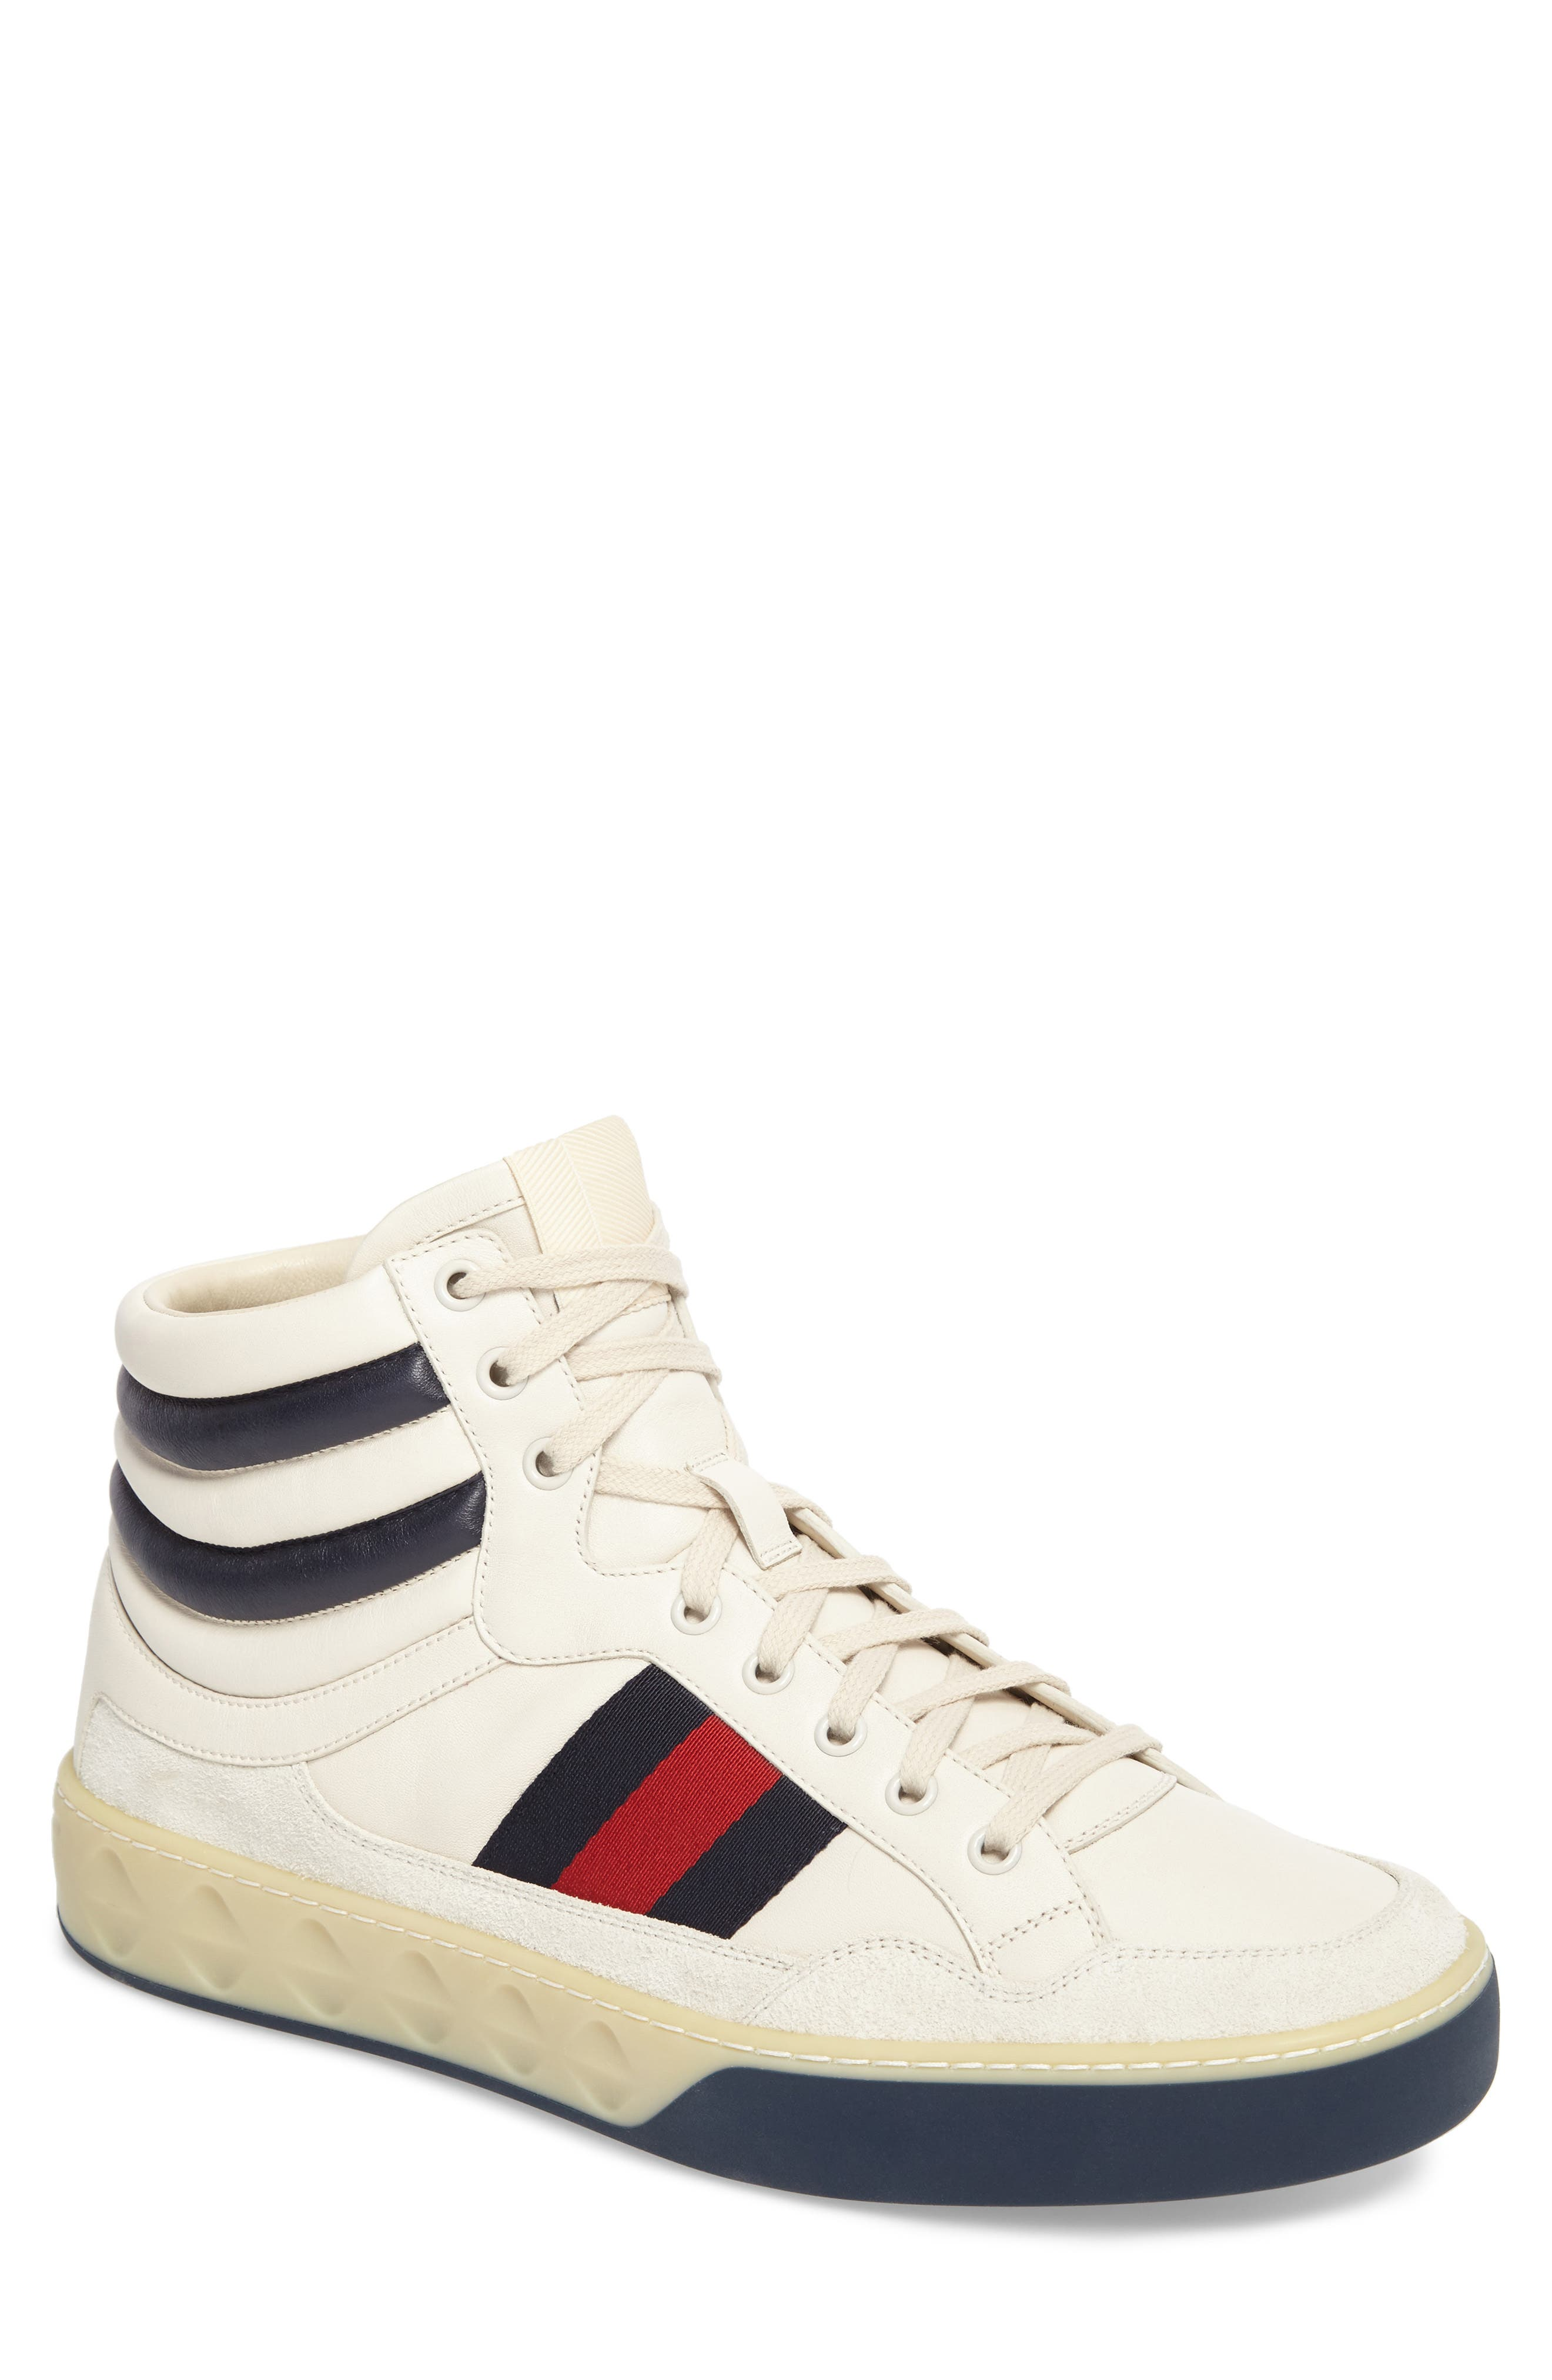 Leather High Top Sneaker,                             Main thumbnail 1, color,                             176